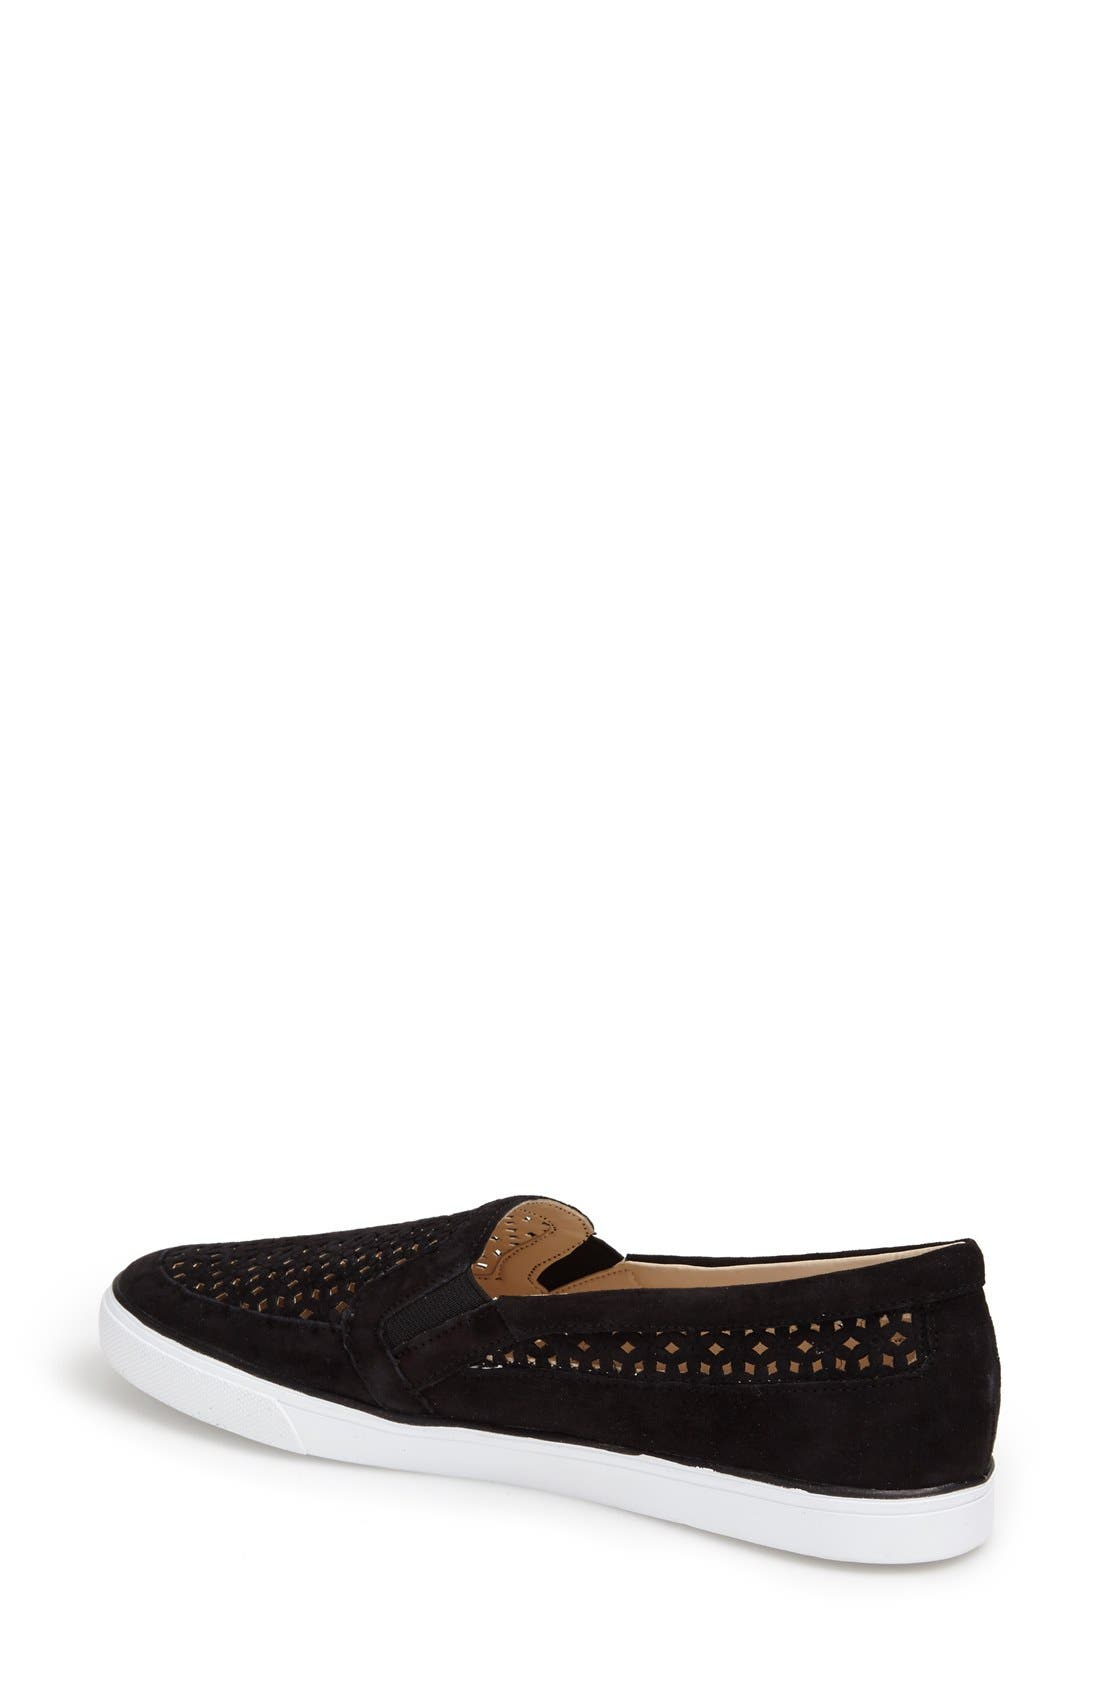 Alternate Image 2  - Nine West 'Banter' Perforated Suede Slip-On Sneaker (Women)